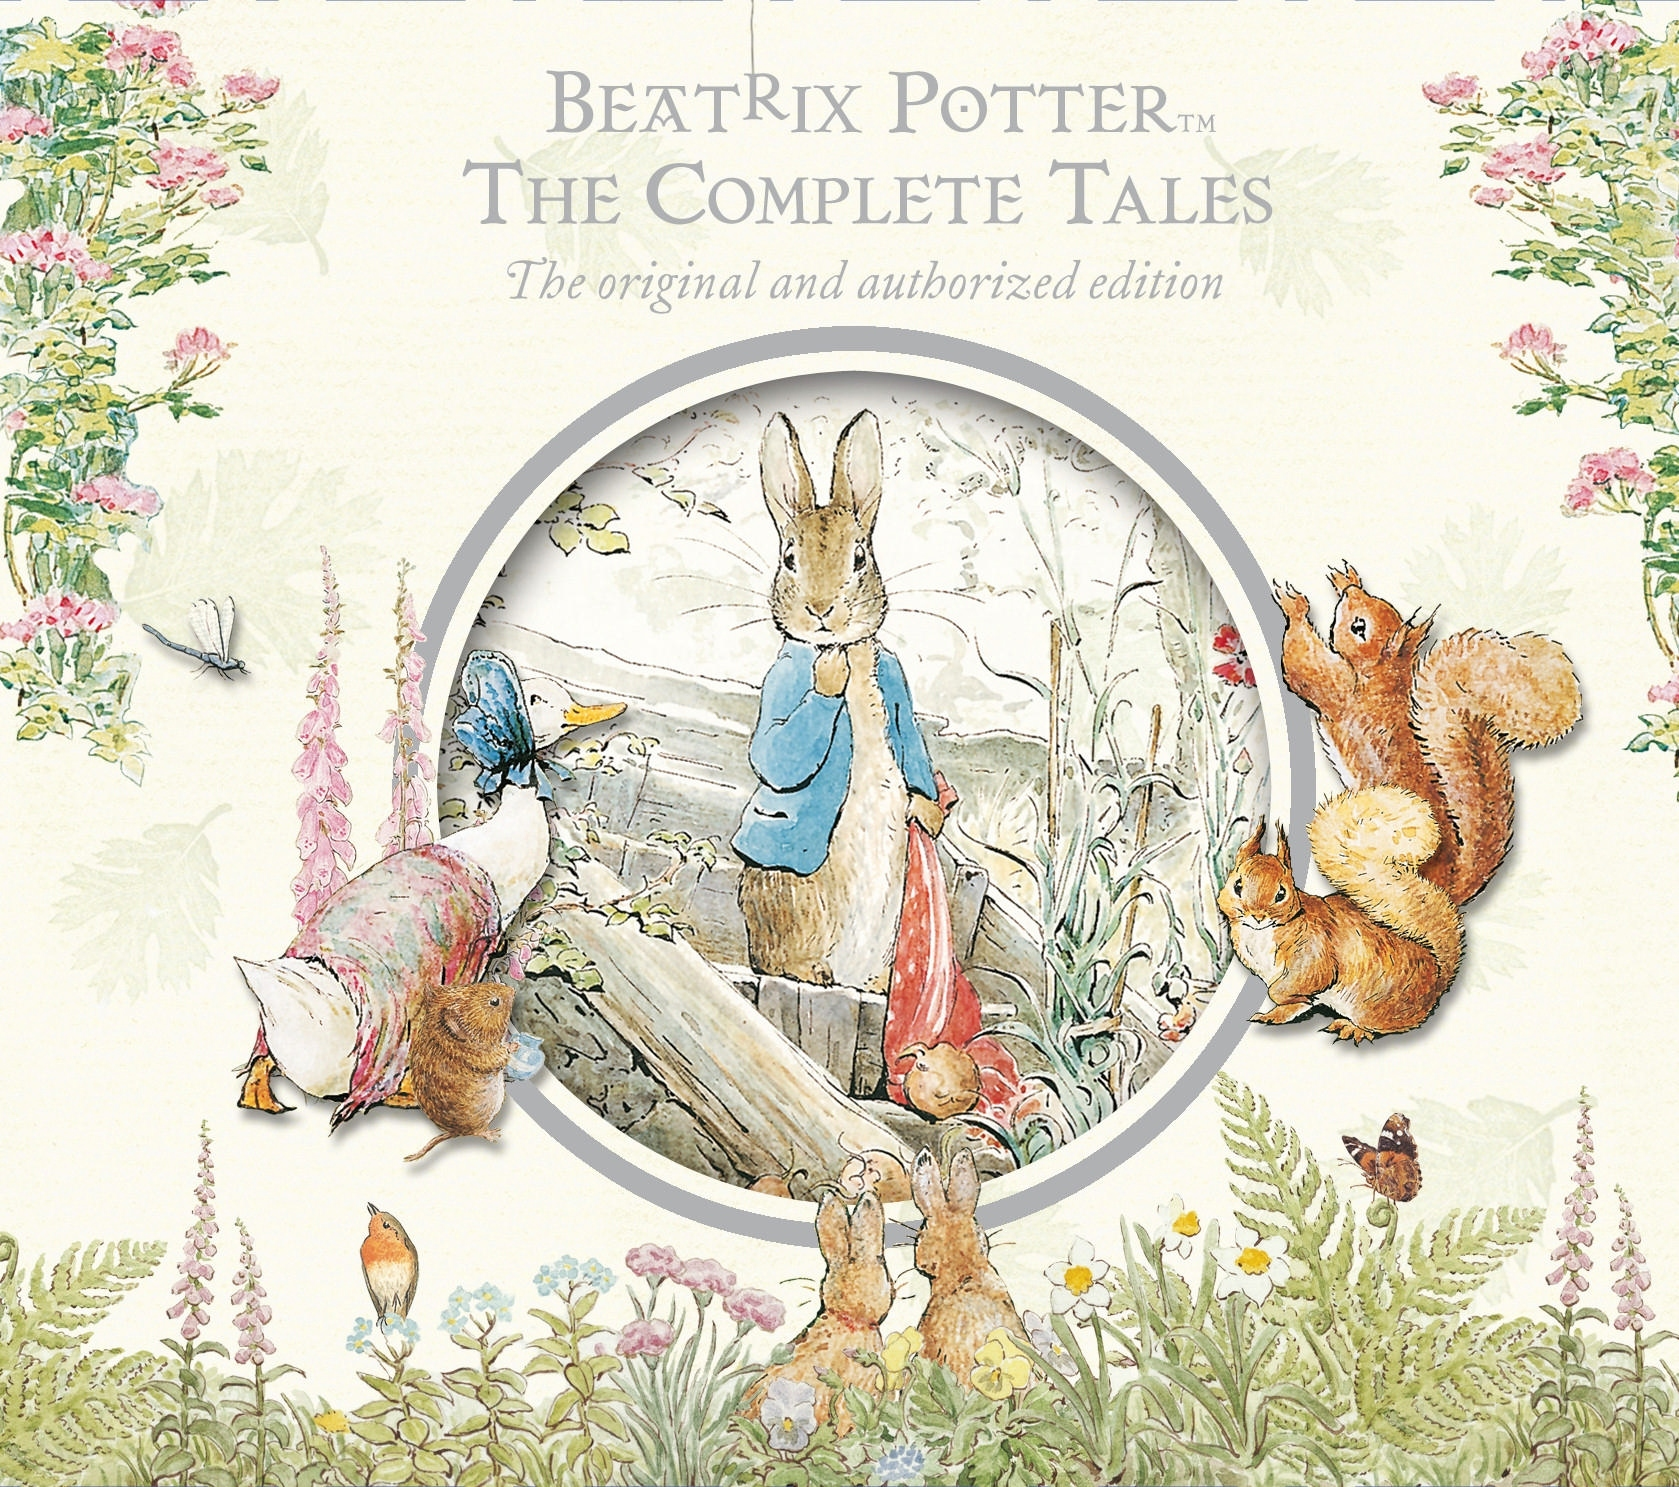 The Complete Tales of Beatrix Potter by Beatrix Potter, ISBN: 9780723258827